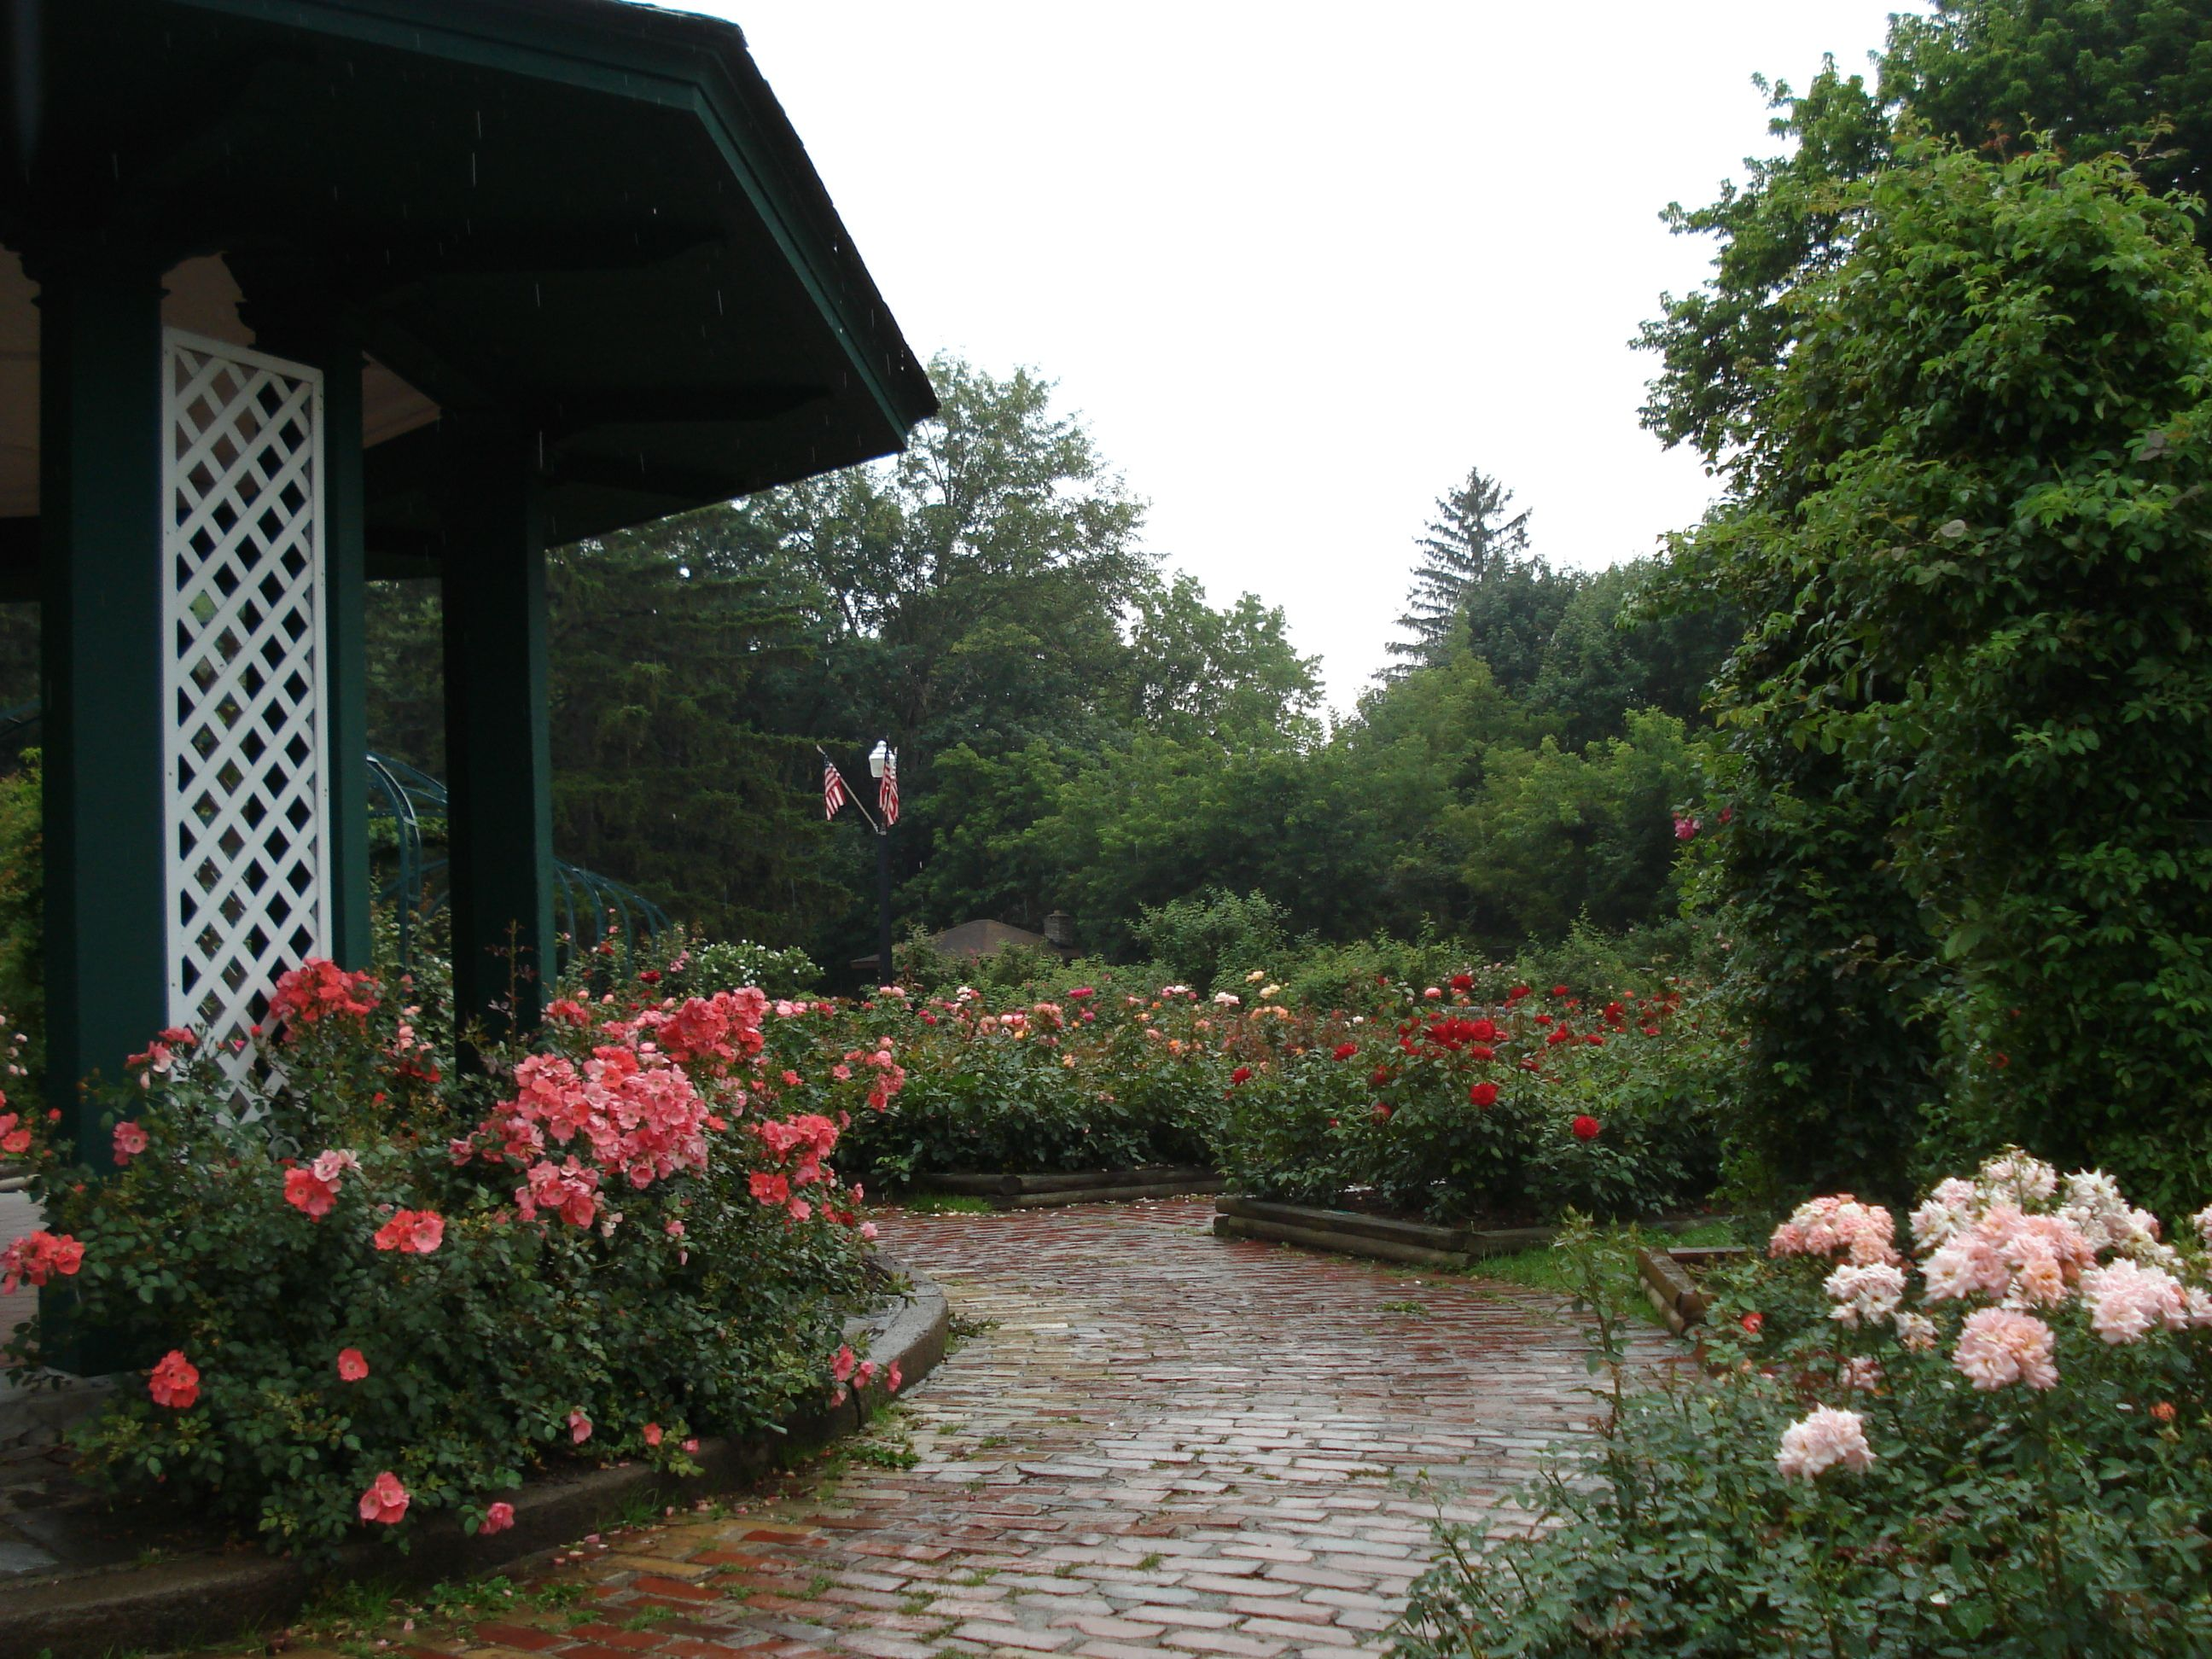 Dr E M Mills Rose Garden is located in Thornden Park Syracuse